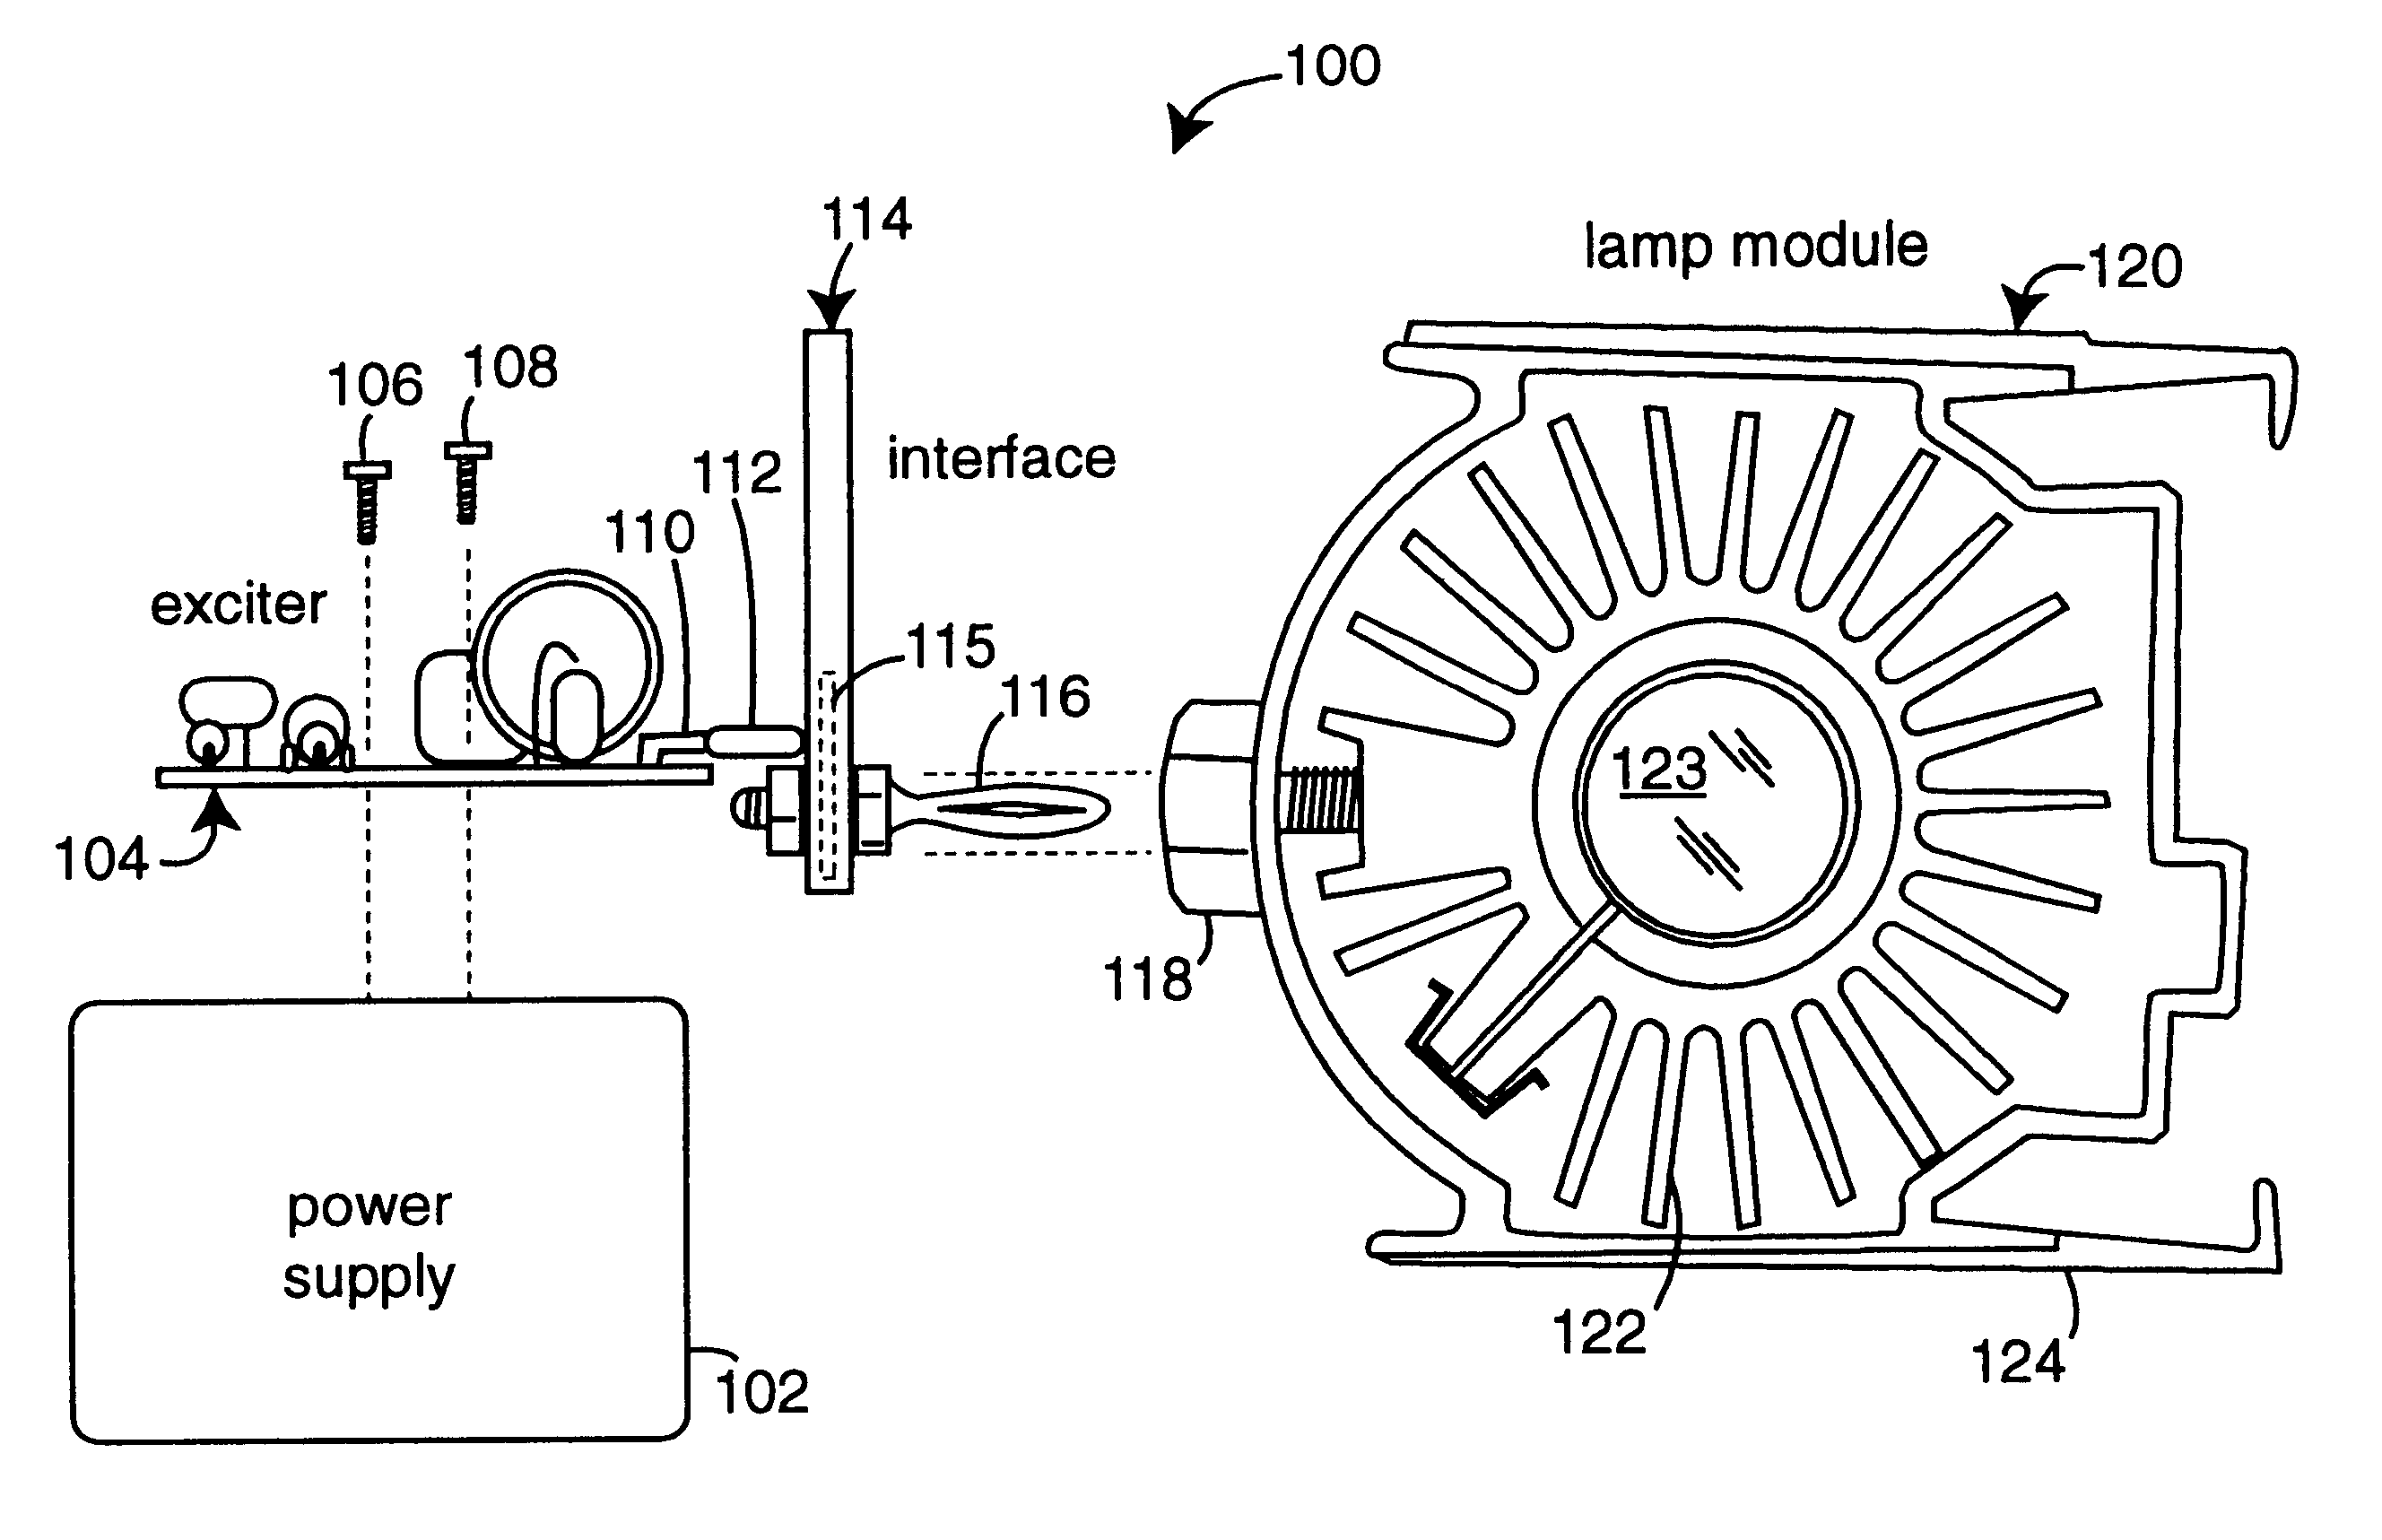 patent us6376993 - power supply to xenon arc lamp interface